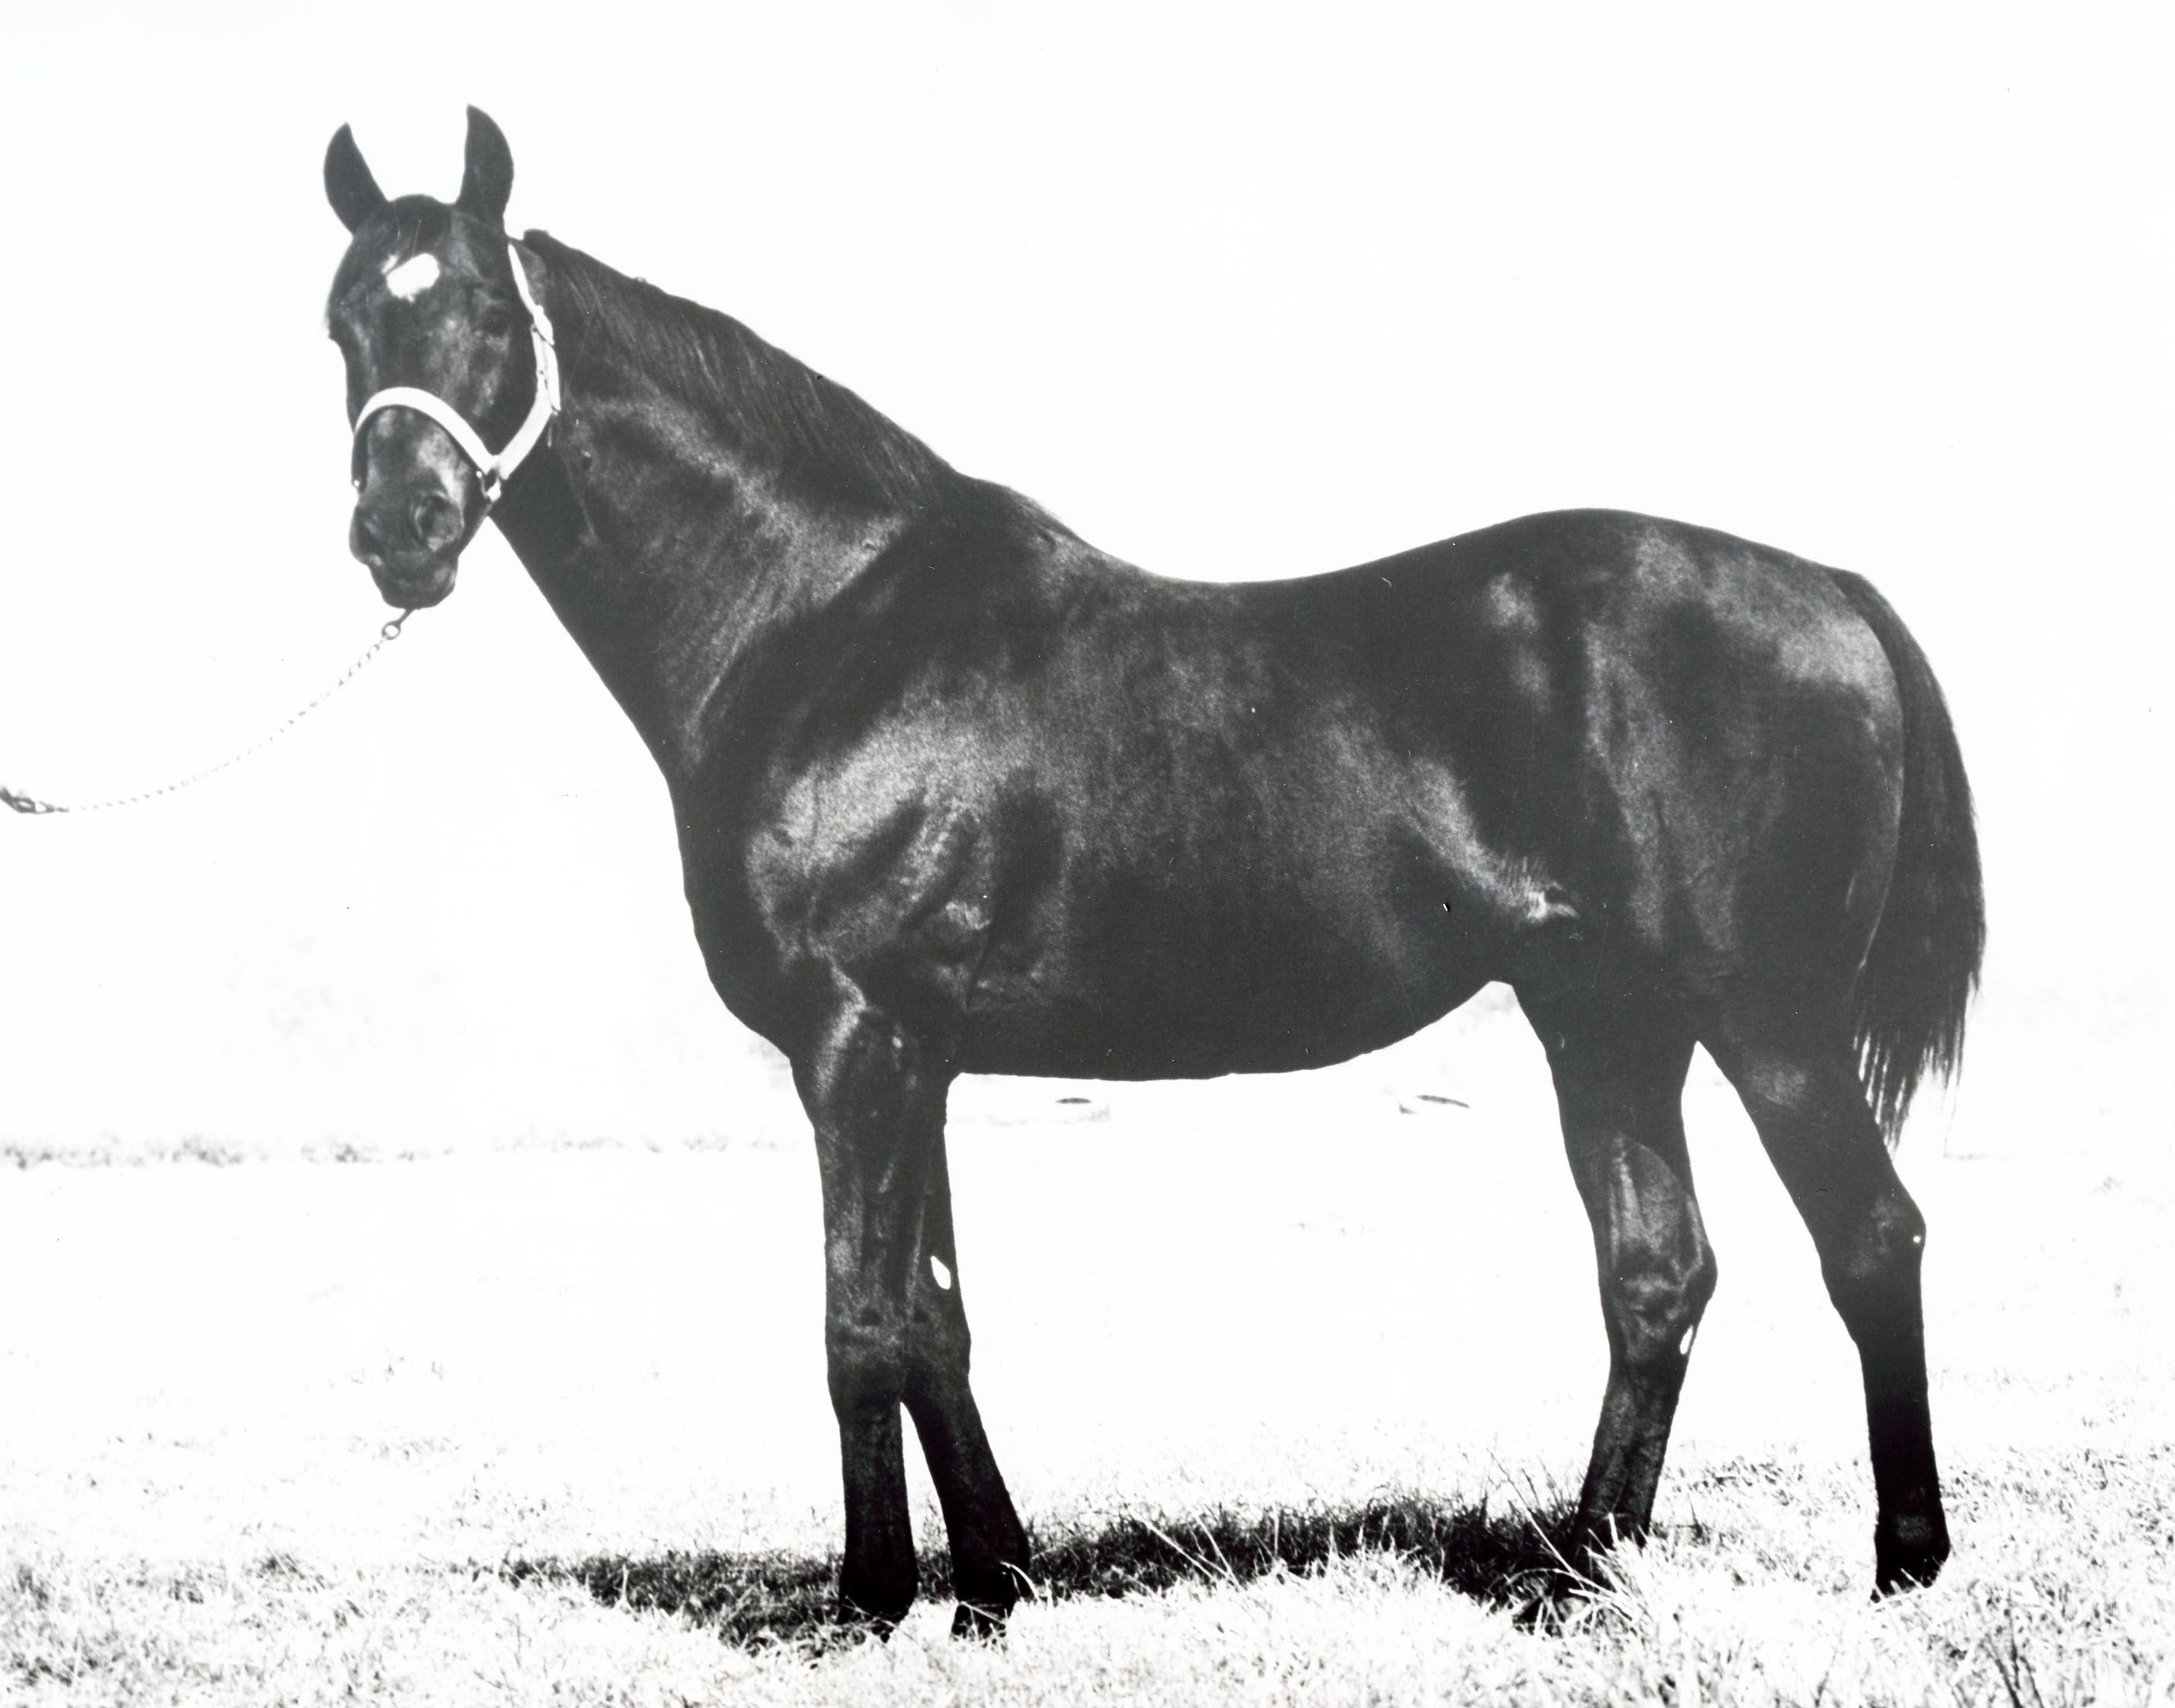 Moon Deck S Family Is One Of The Fastest Families Of Quarter Horses To Breeze Into The Record Books Aqha Horses Quarter Horse Stallion American Quarter Horse